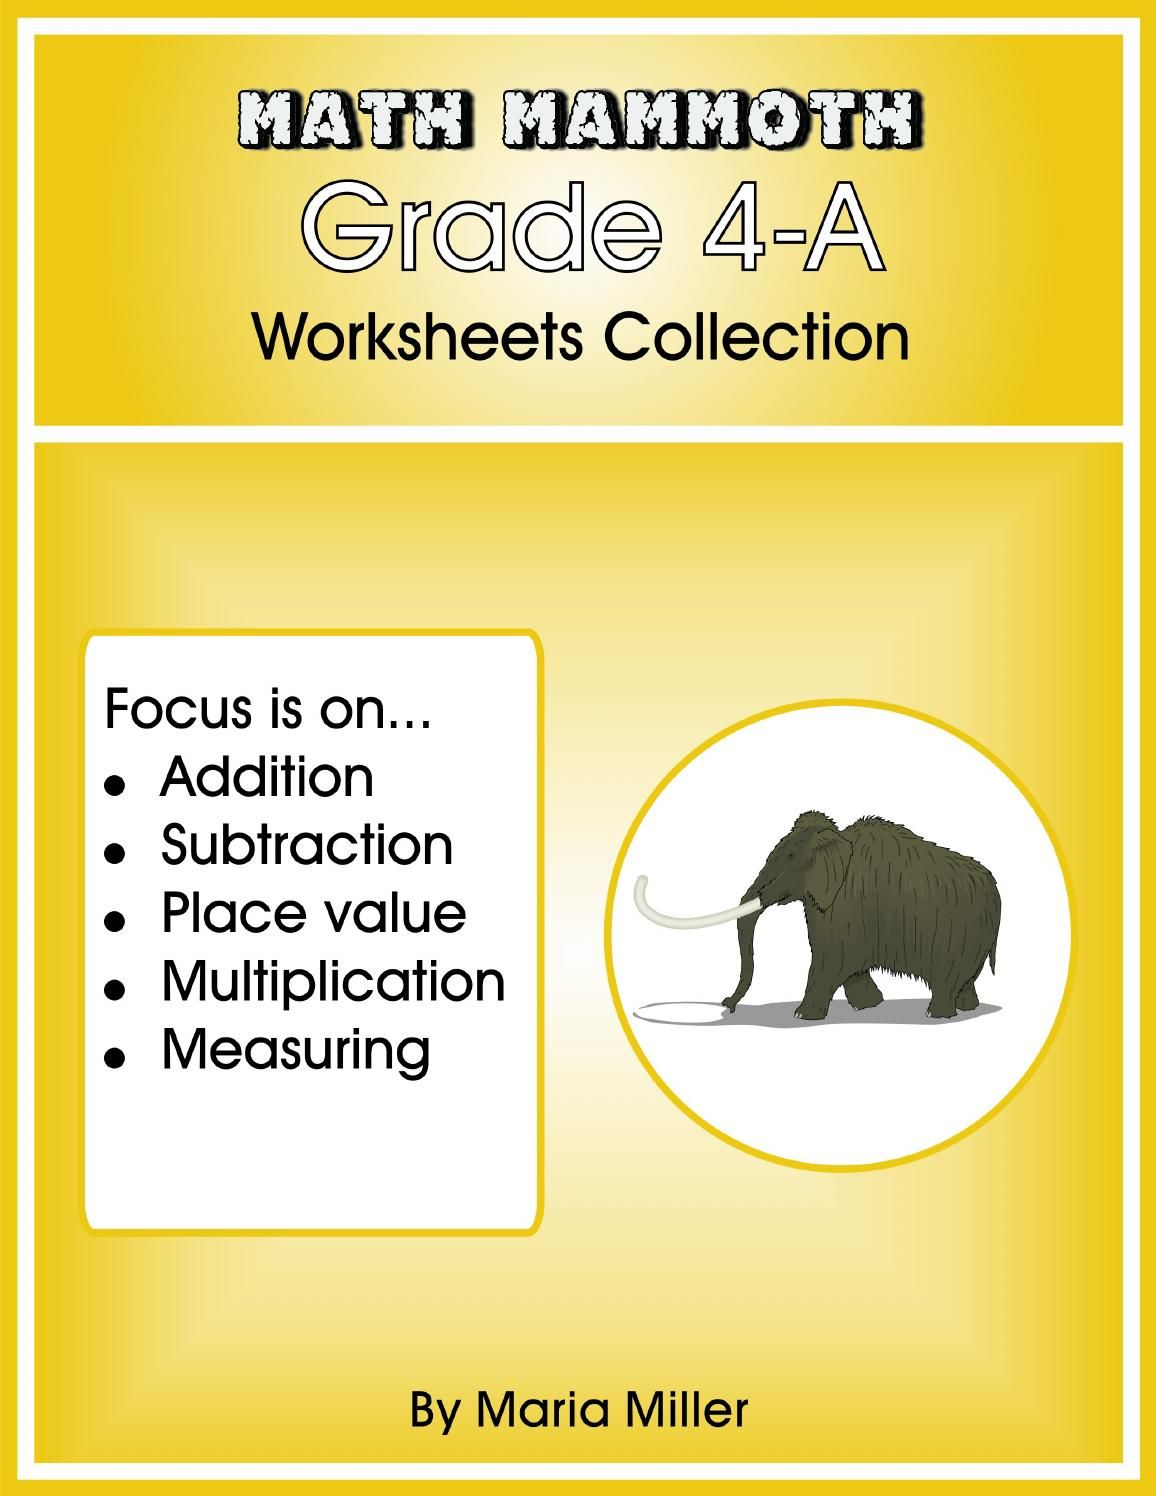 Grade 4a Worksheets